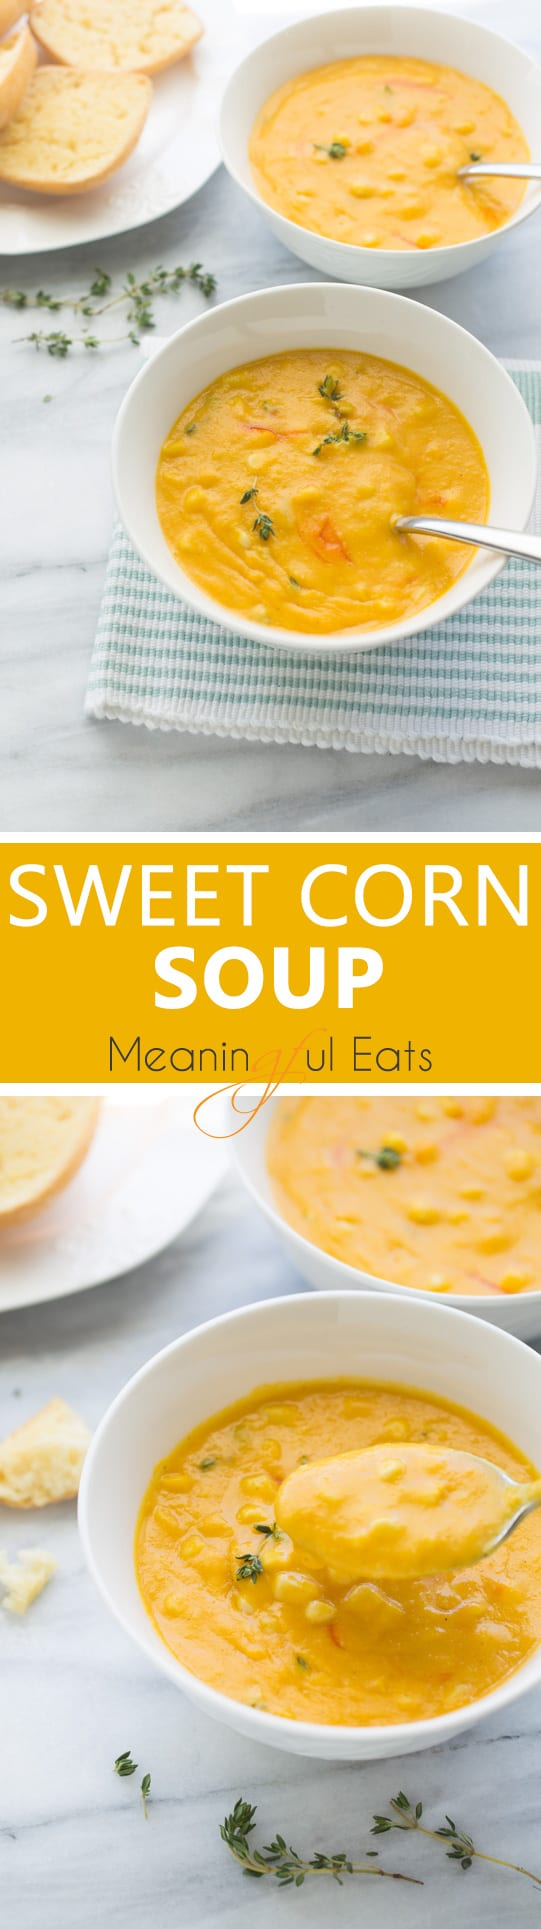 Sweet Corn Soup! An easy, healthy soup made with fresh ingredients. (Gluten-Free, Dairy-Free)